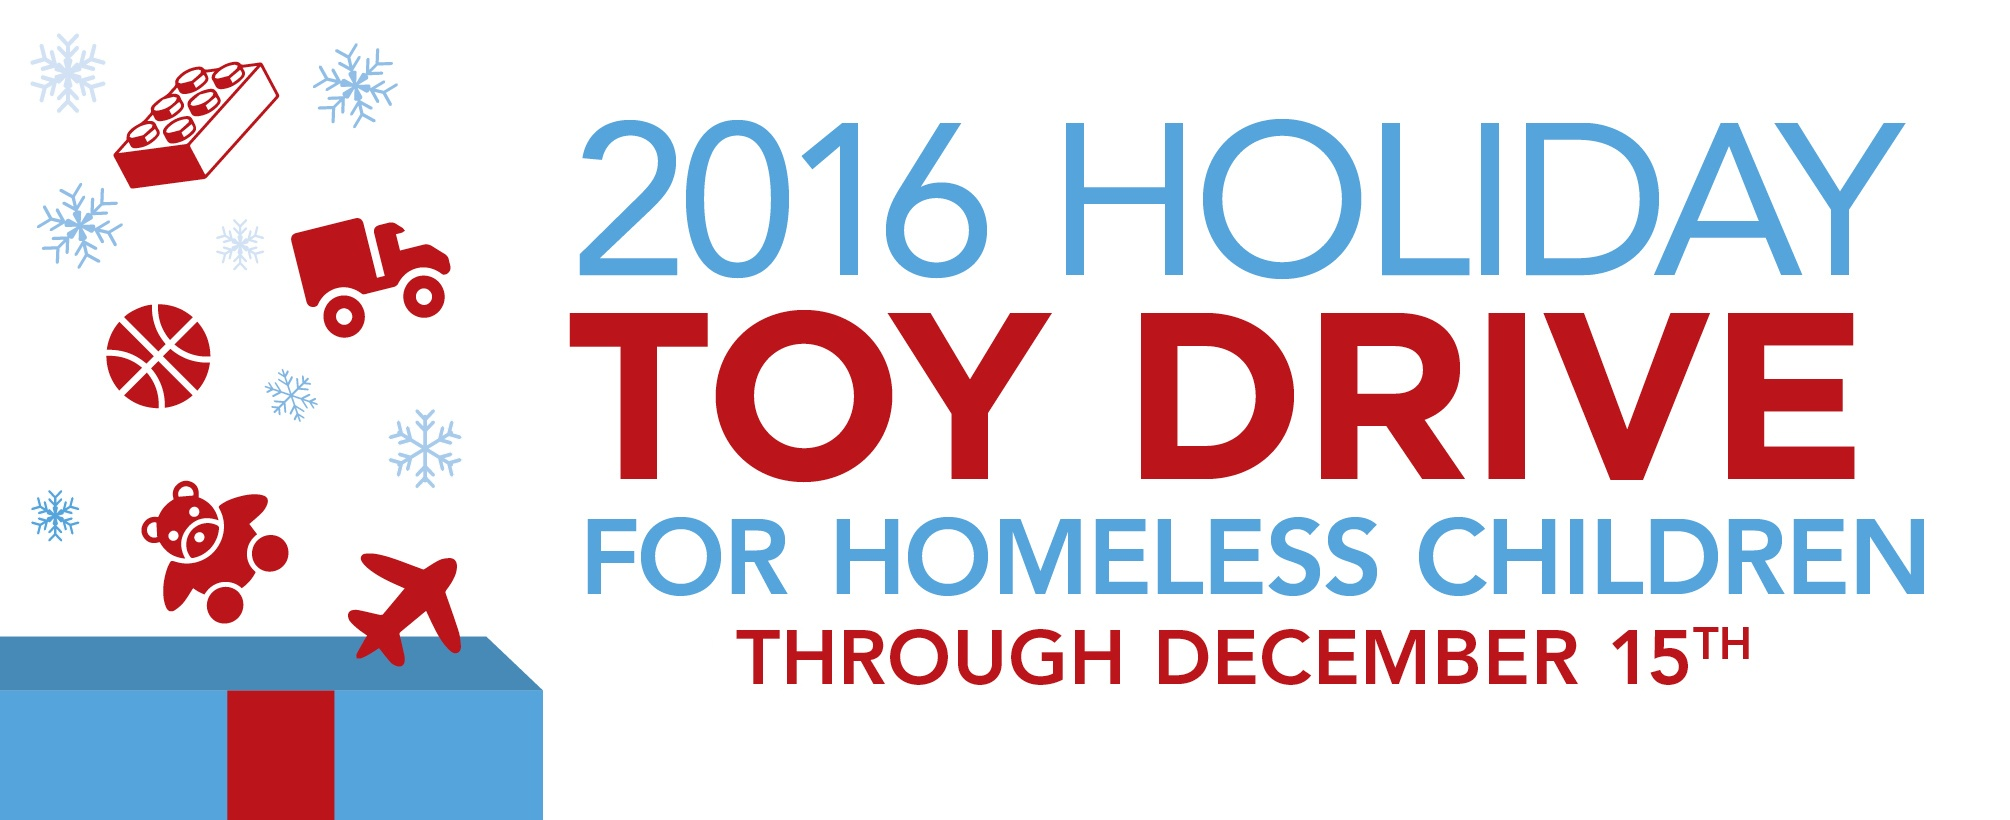 2016 Holiday Toy Drive